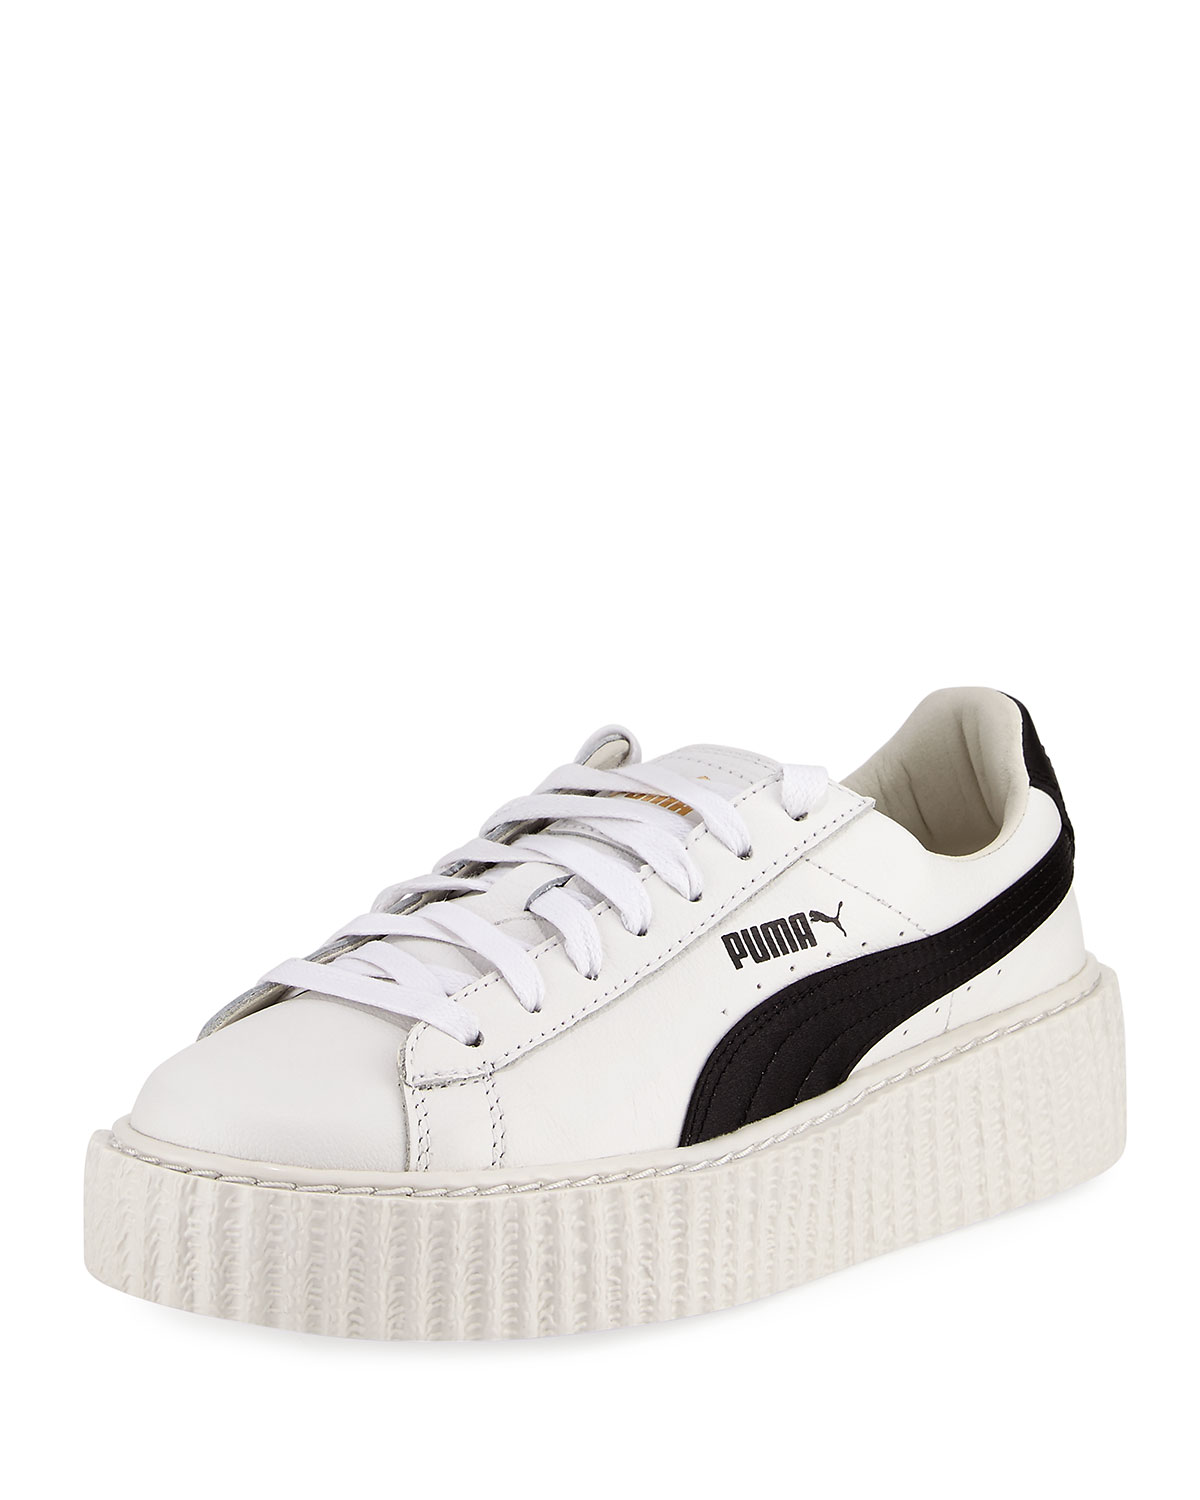 timeless design 9dff6 d50ae Leather Creeper Sneaker, White/Black